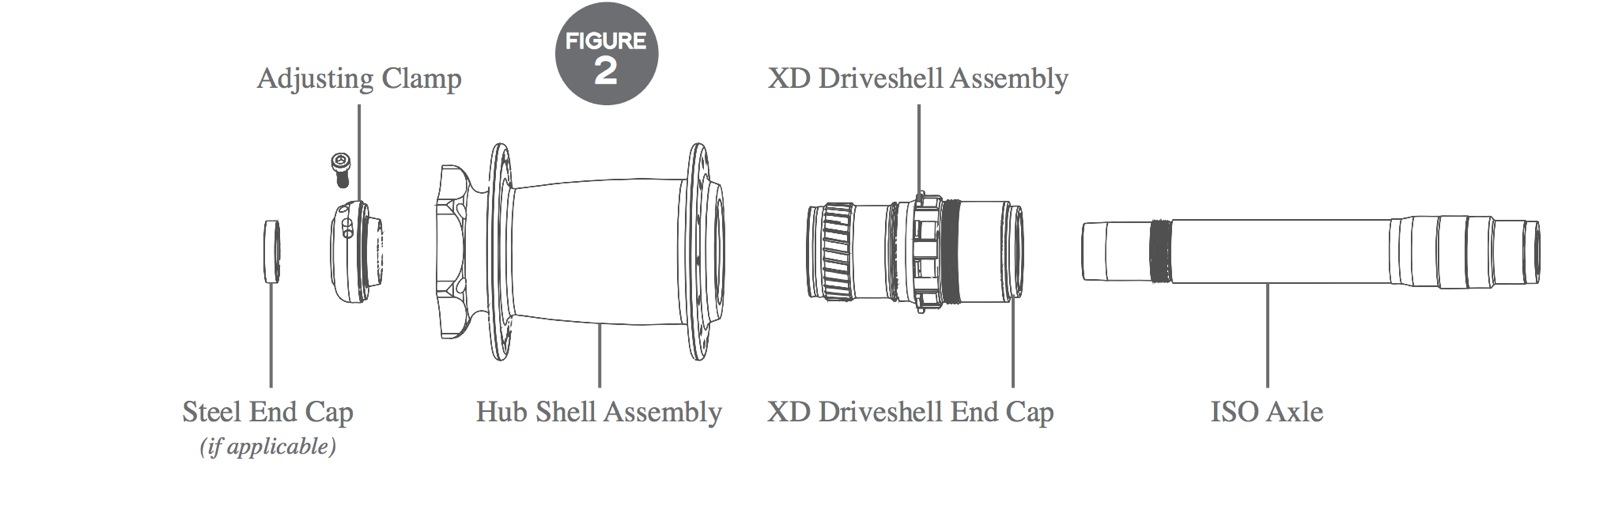 King XD RingDrive schematic